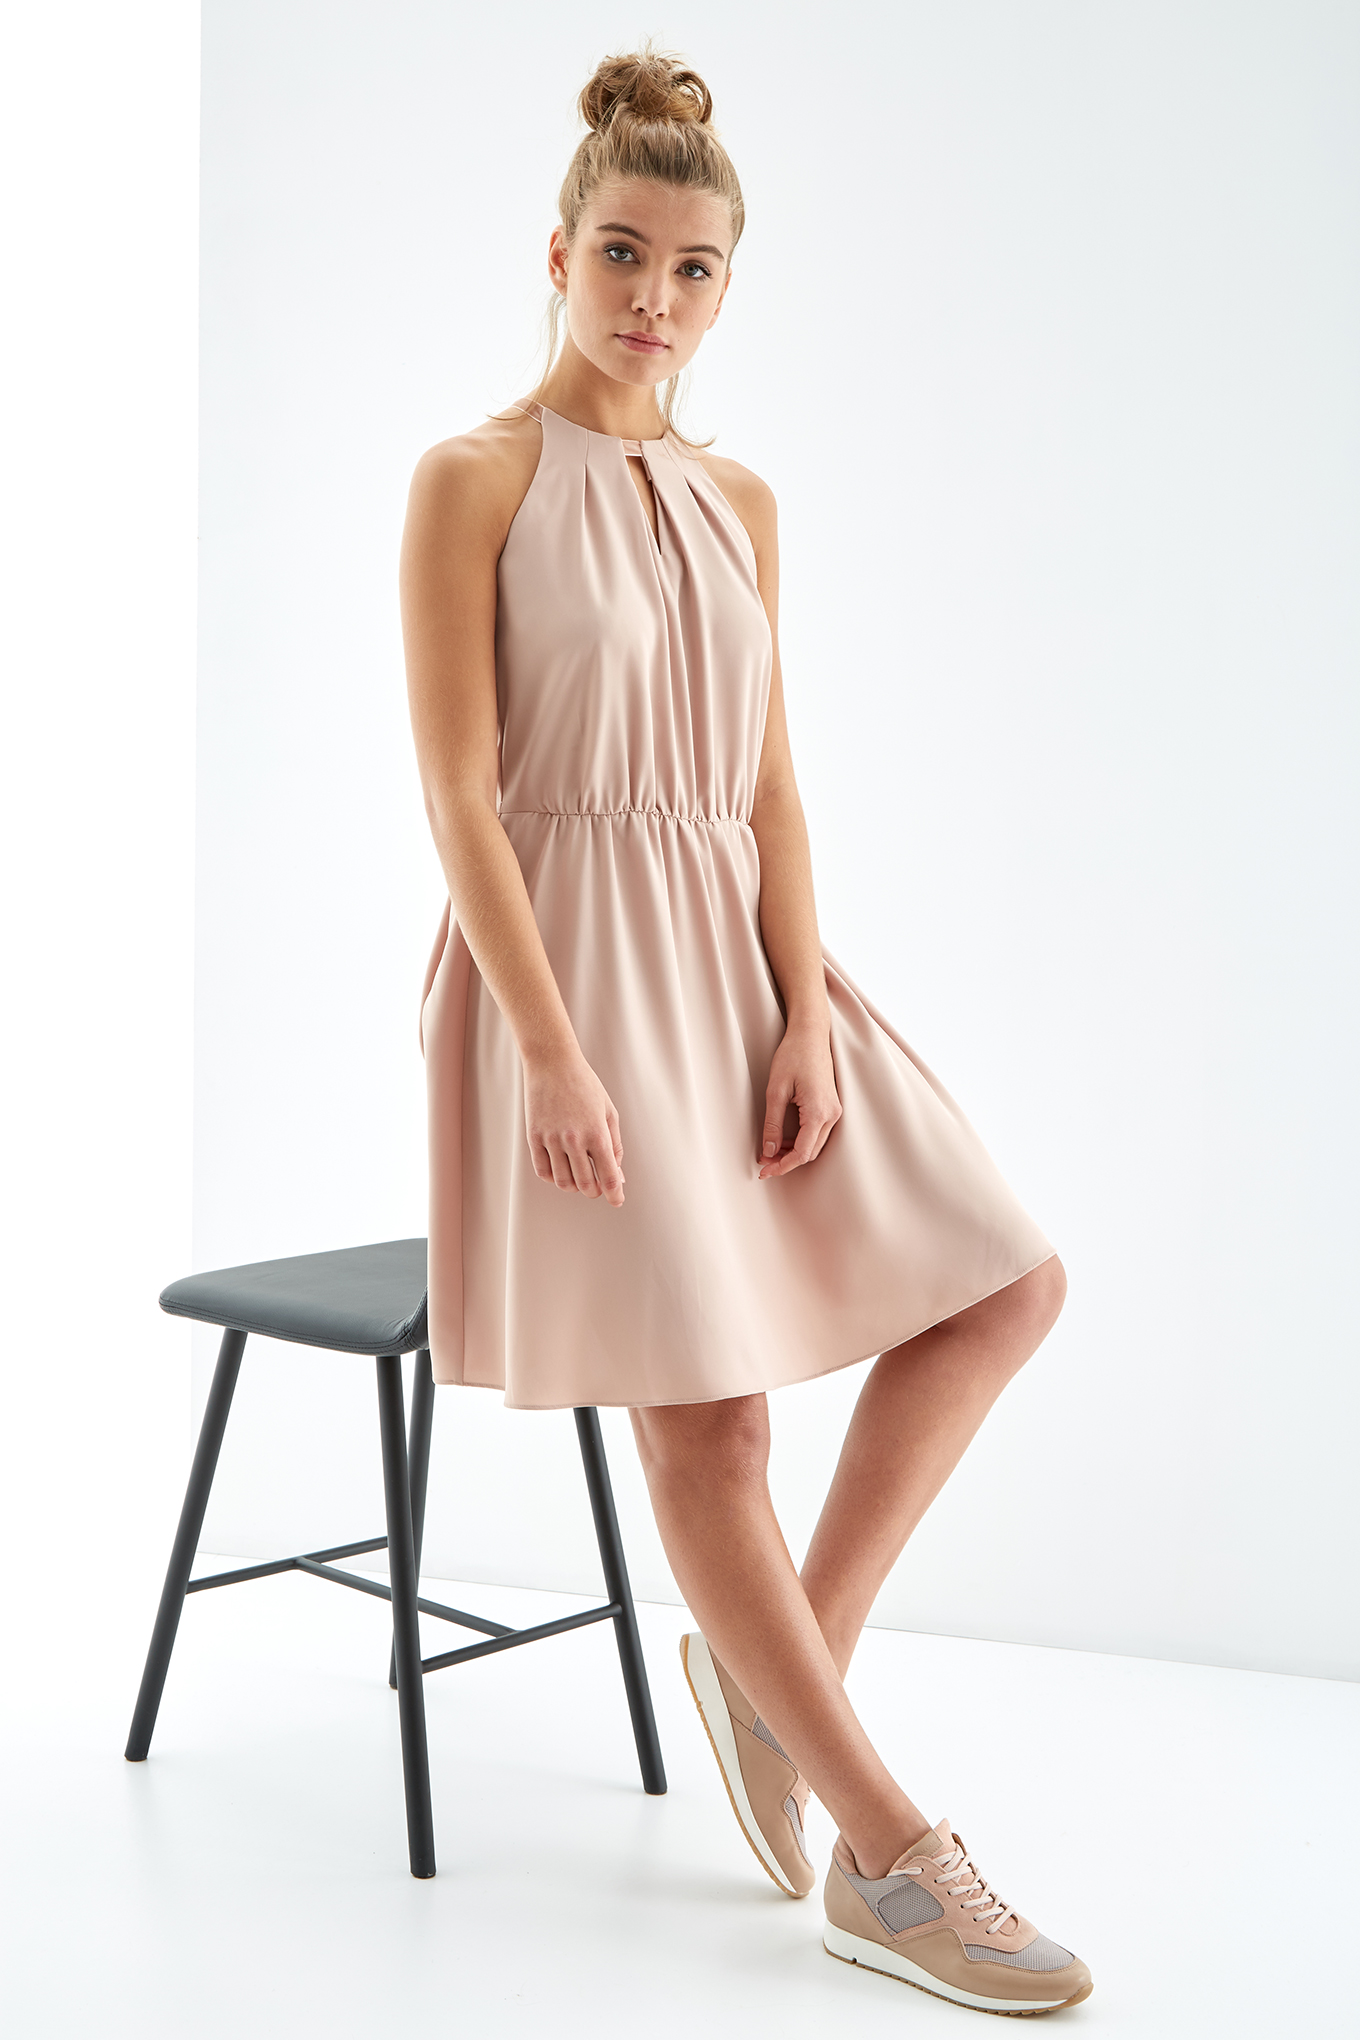 Dress Pale Pink Fantasy Woman